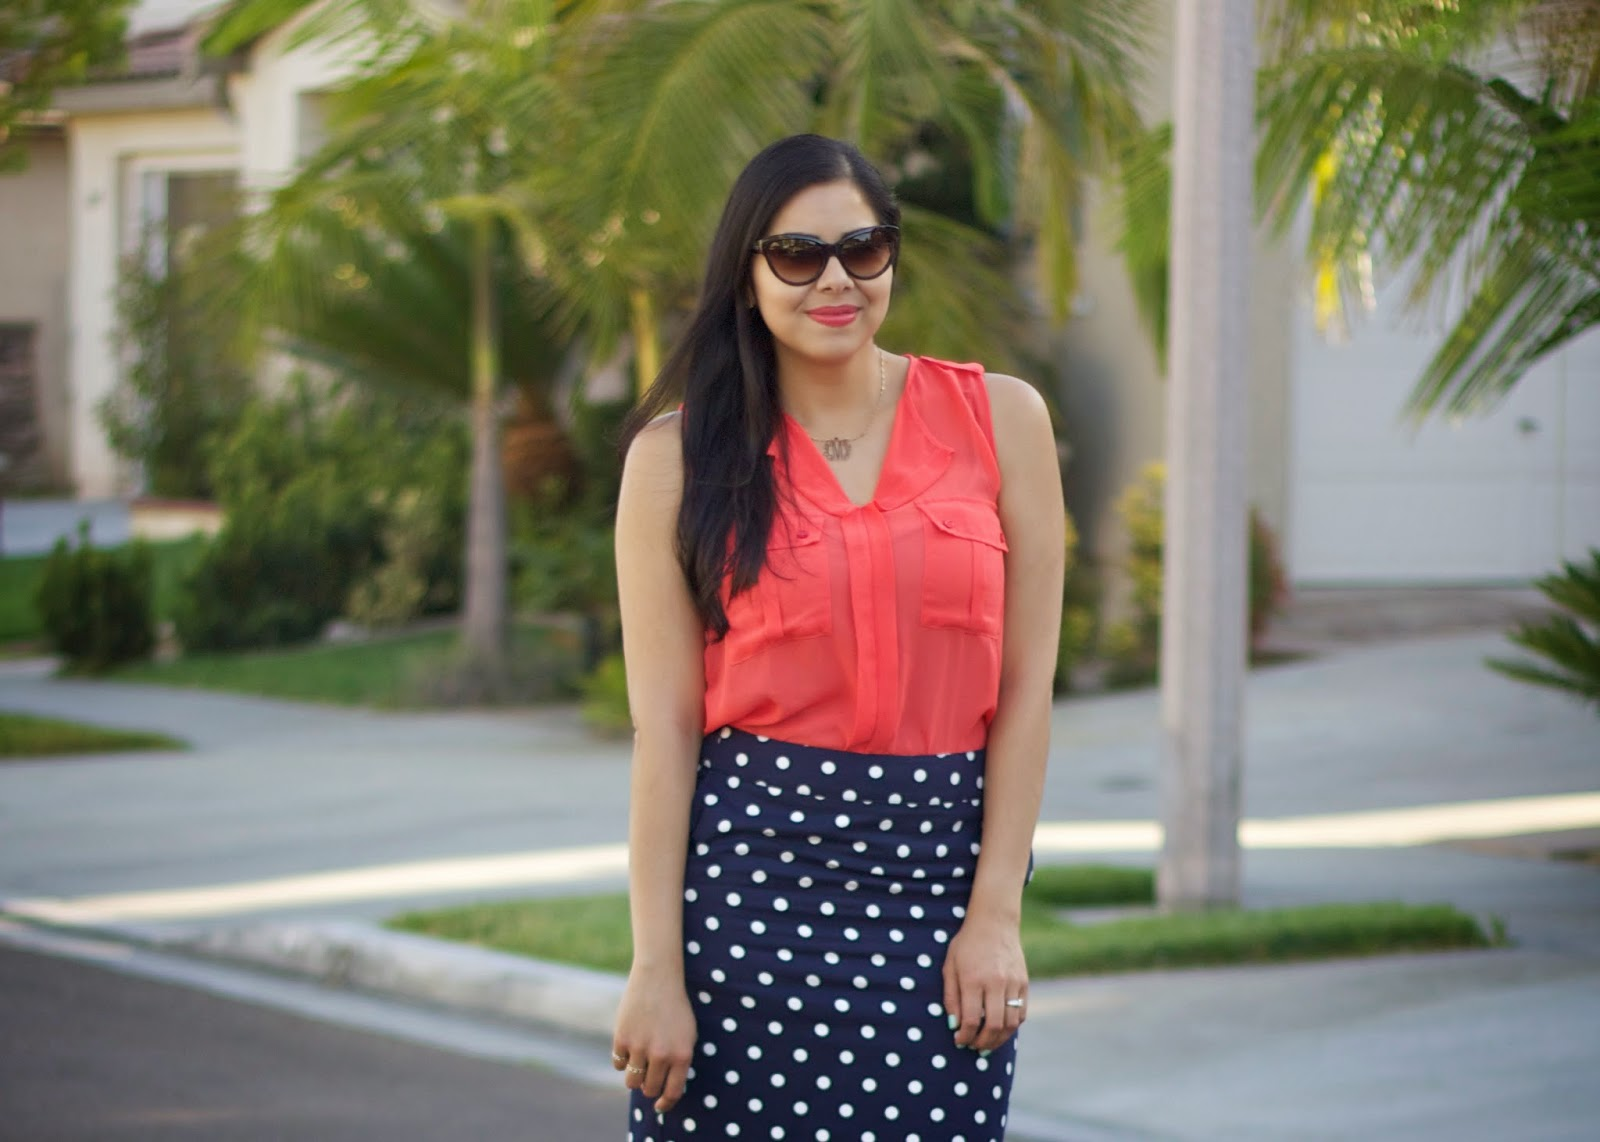 How to wear a coral top, sheer coral top, orange sheer top, orange sheer shirt, orange shirt and lipstick